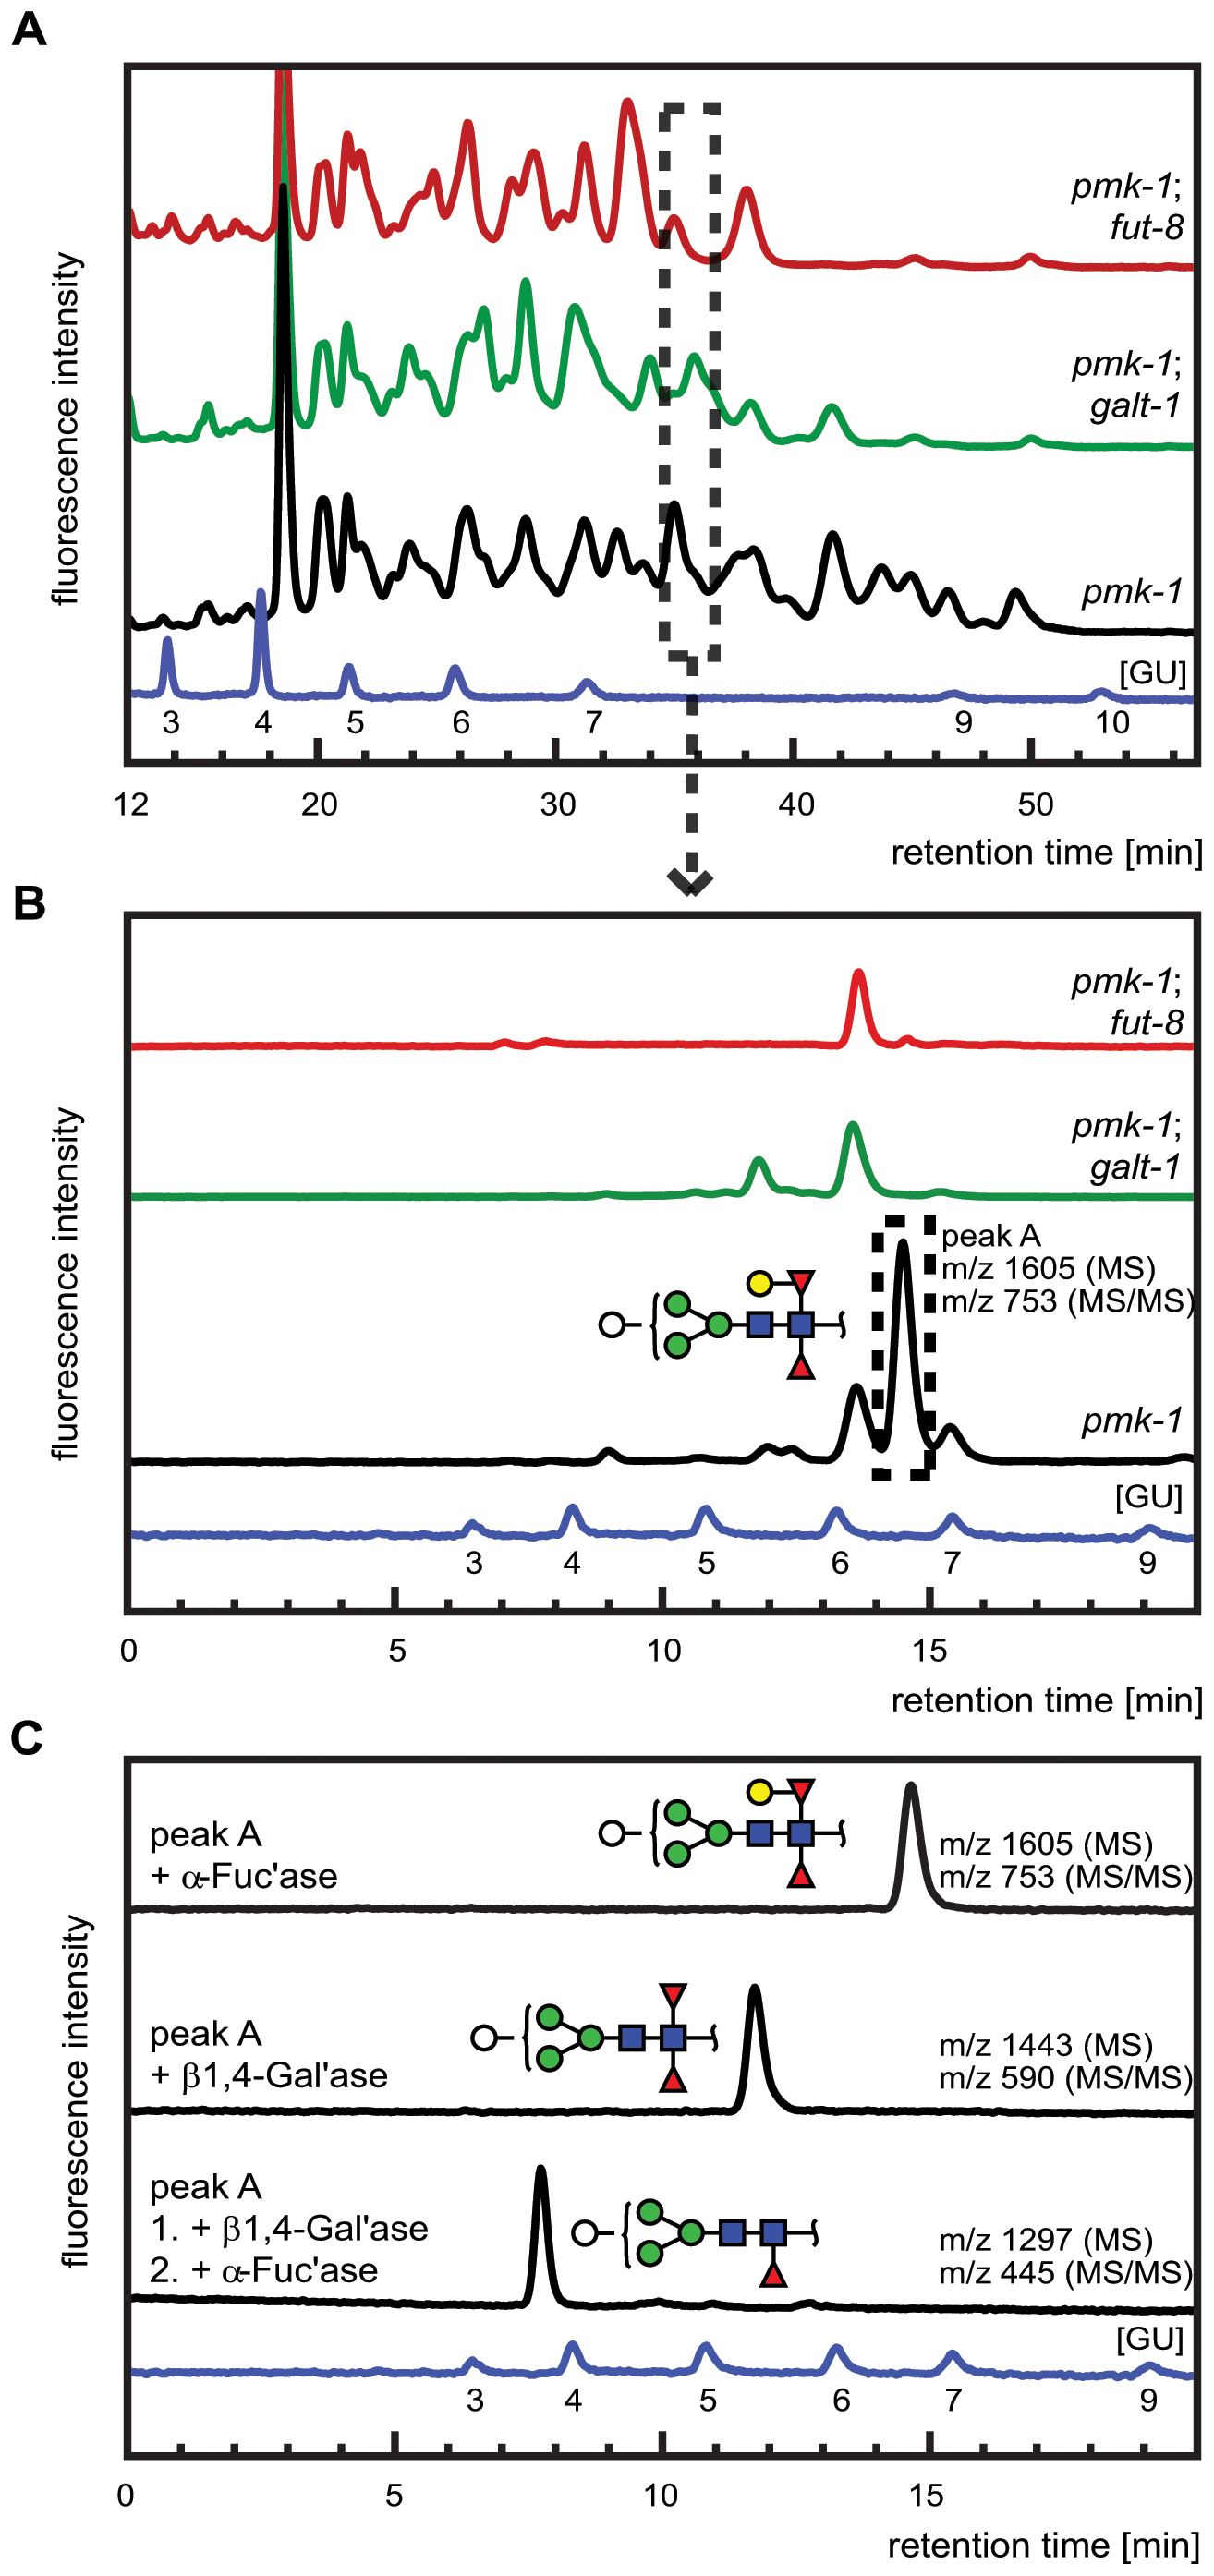 Comparative analysis of the N-glycome in CGL2-resistant <i>C. elegans</i> double mutants <i>pmk-1;fut-8(op498)</i> (red trace) and <i>pmk-1(km25);M03F8.4(op497)</i> (green trace) and the isogenic CGL2-hypersensitive single mutant strain <i>pmk-1(km25)</i> (black trace).